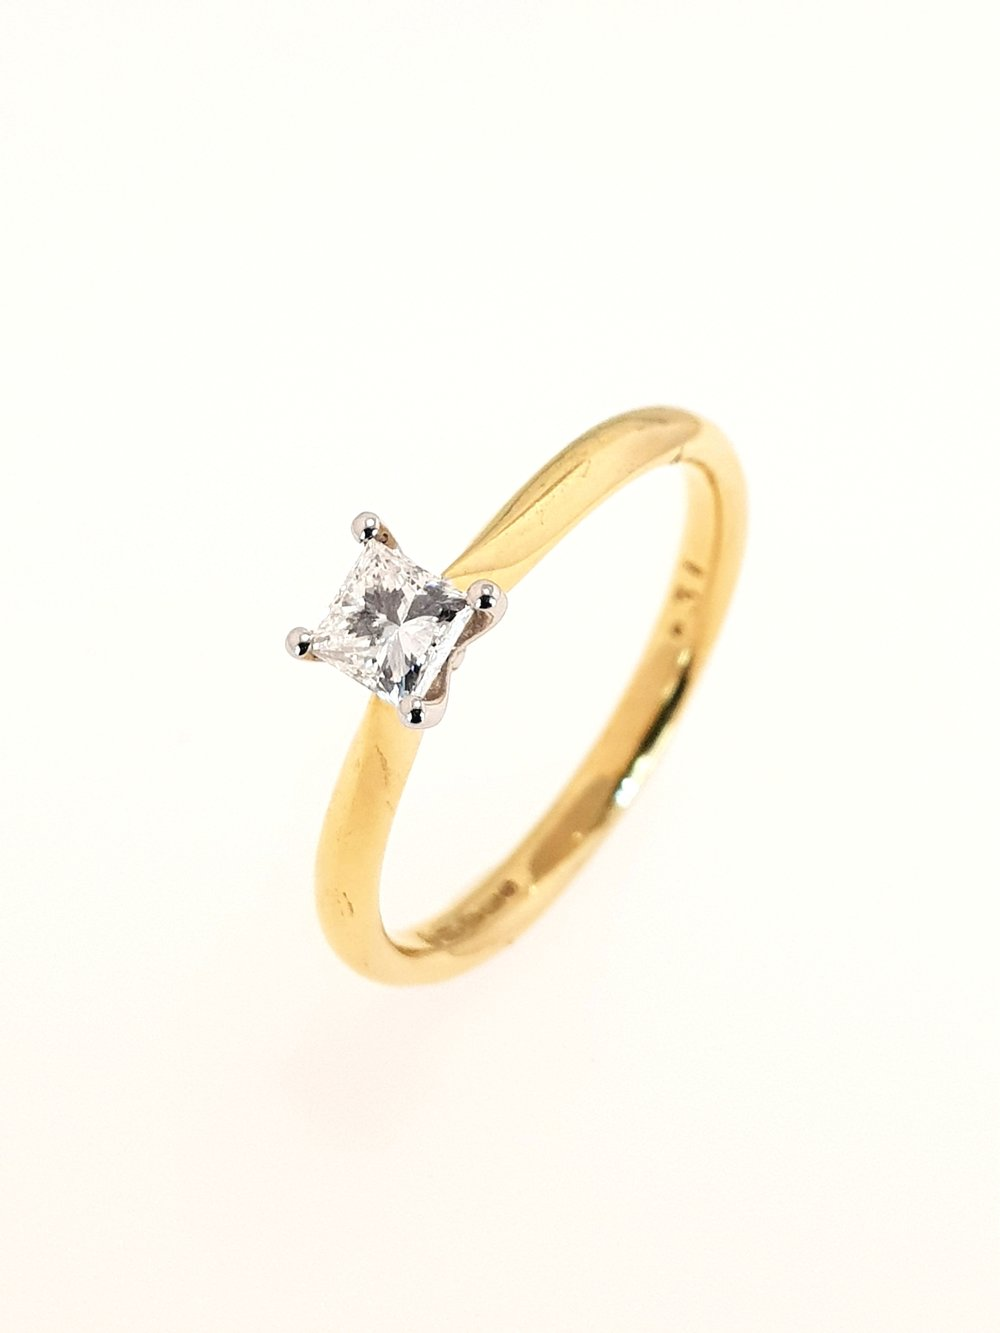 18ct Yellow Gold Diamond Ring, Princess Cut  .31ct, G, VS1  Stock Code: N8340  £1400